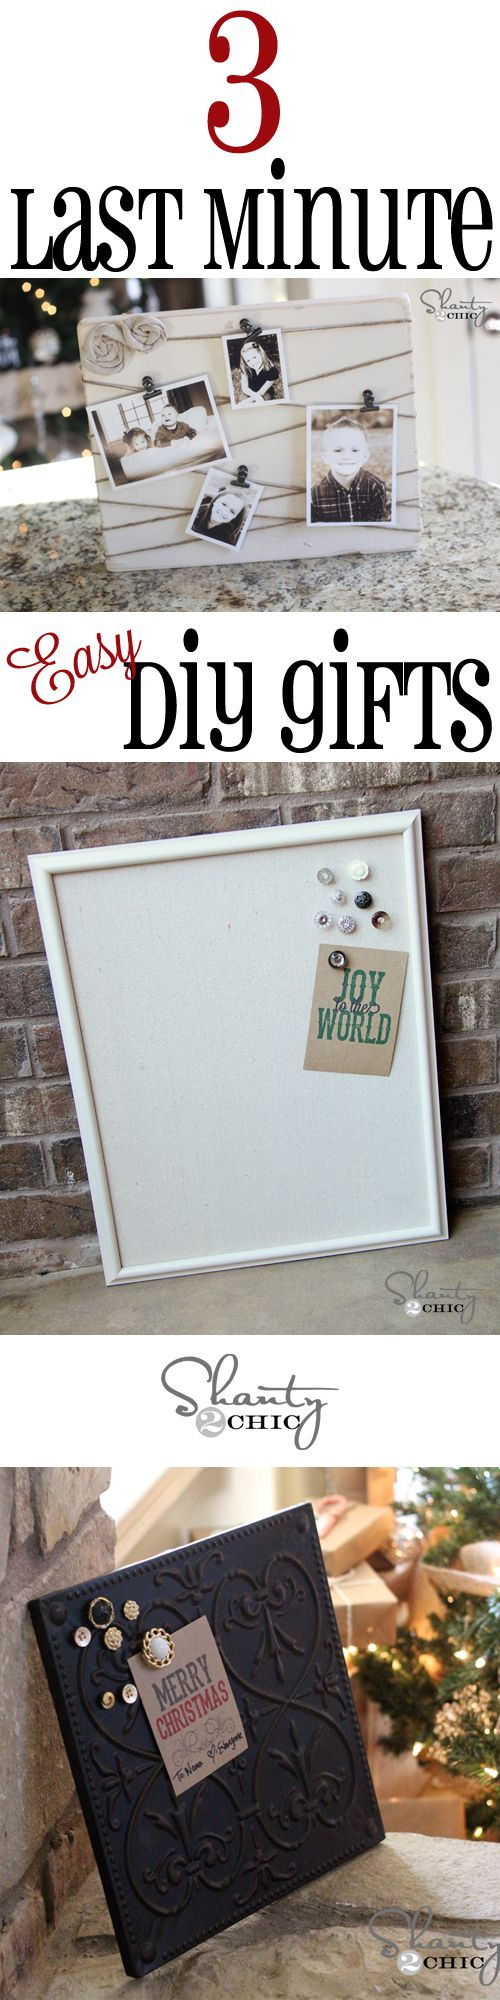 Love these ideas! Easy DIY for yourself or gifts or both!